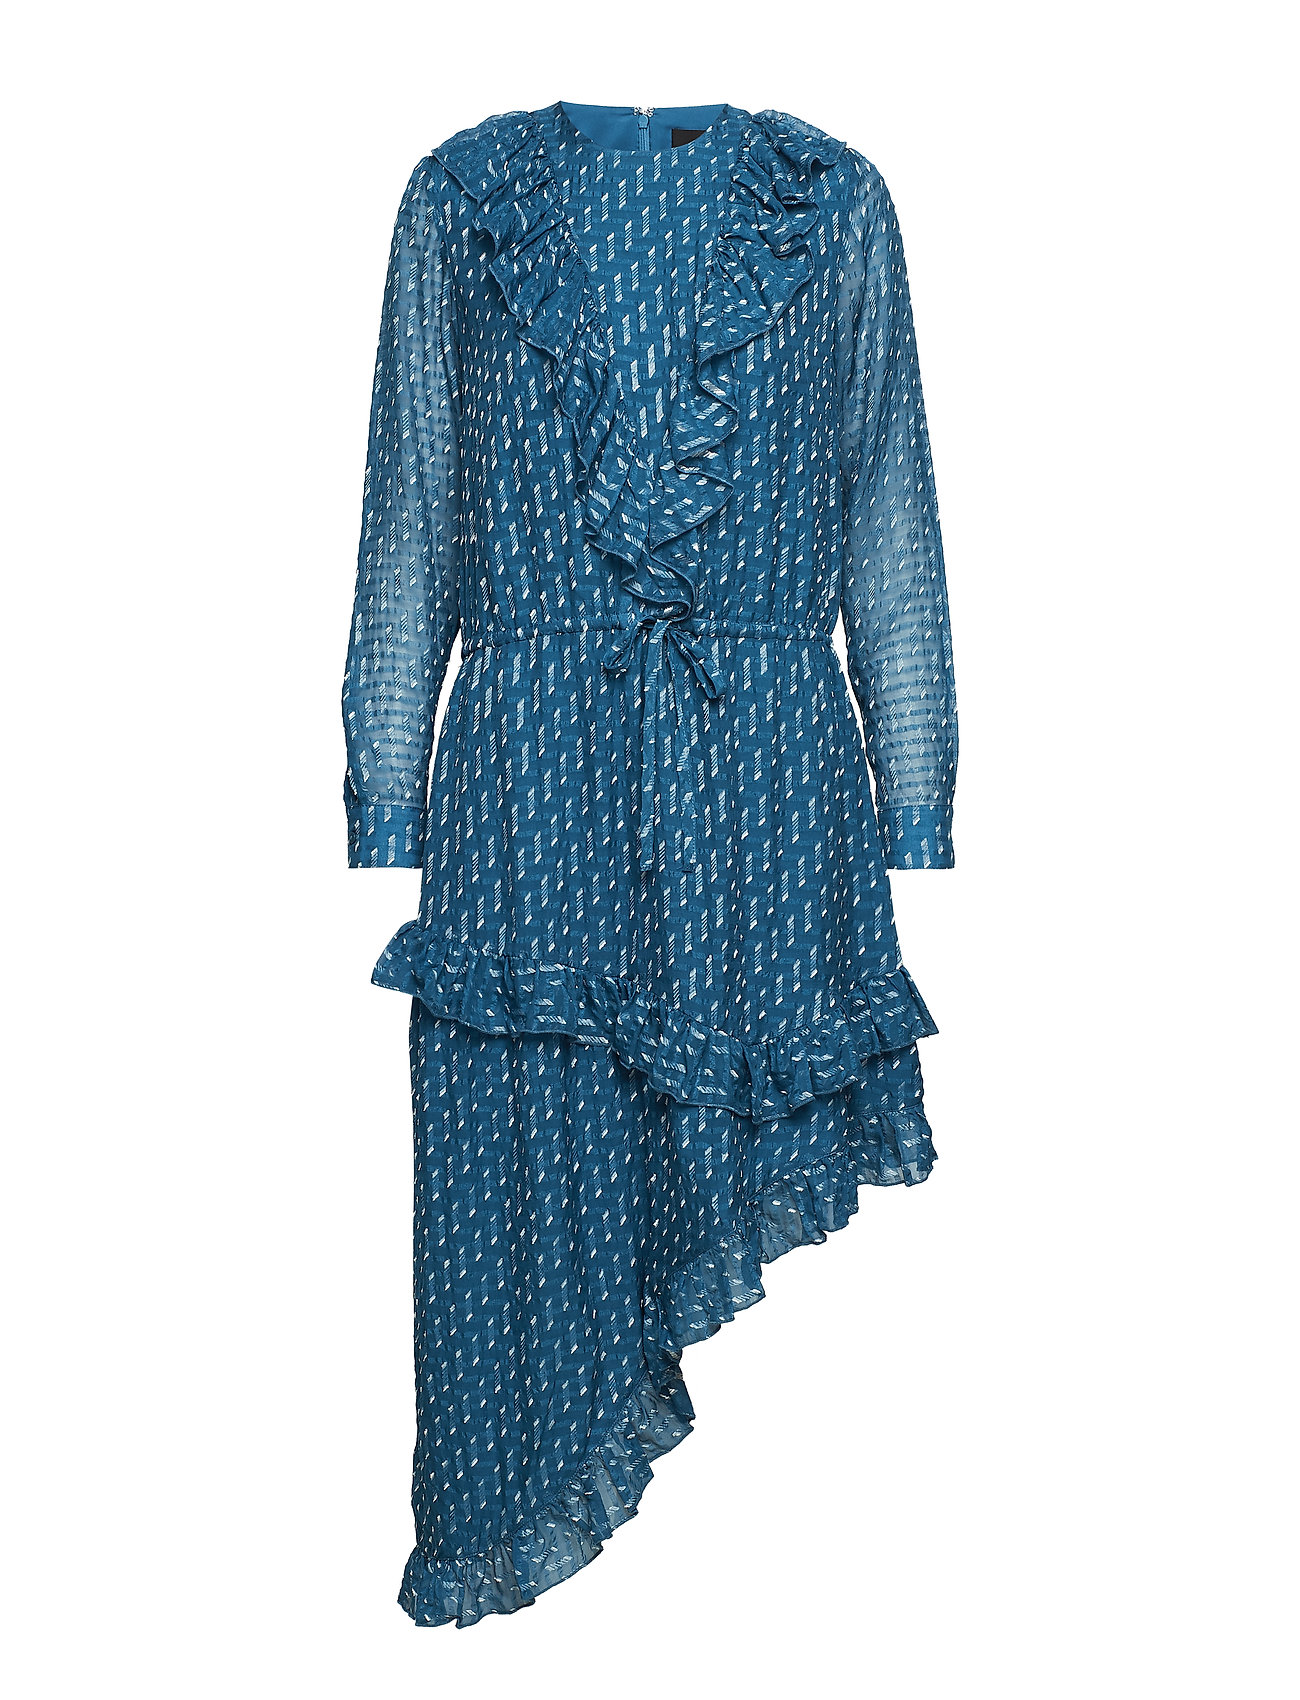 Birgitte Herskind Dandy Dress - AQUA